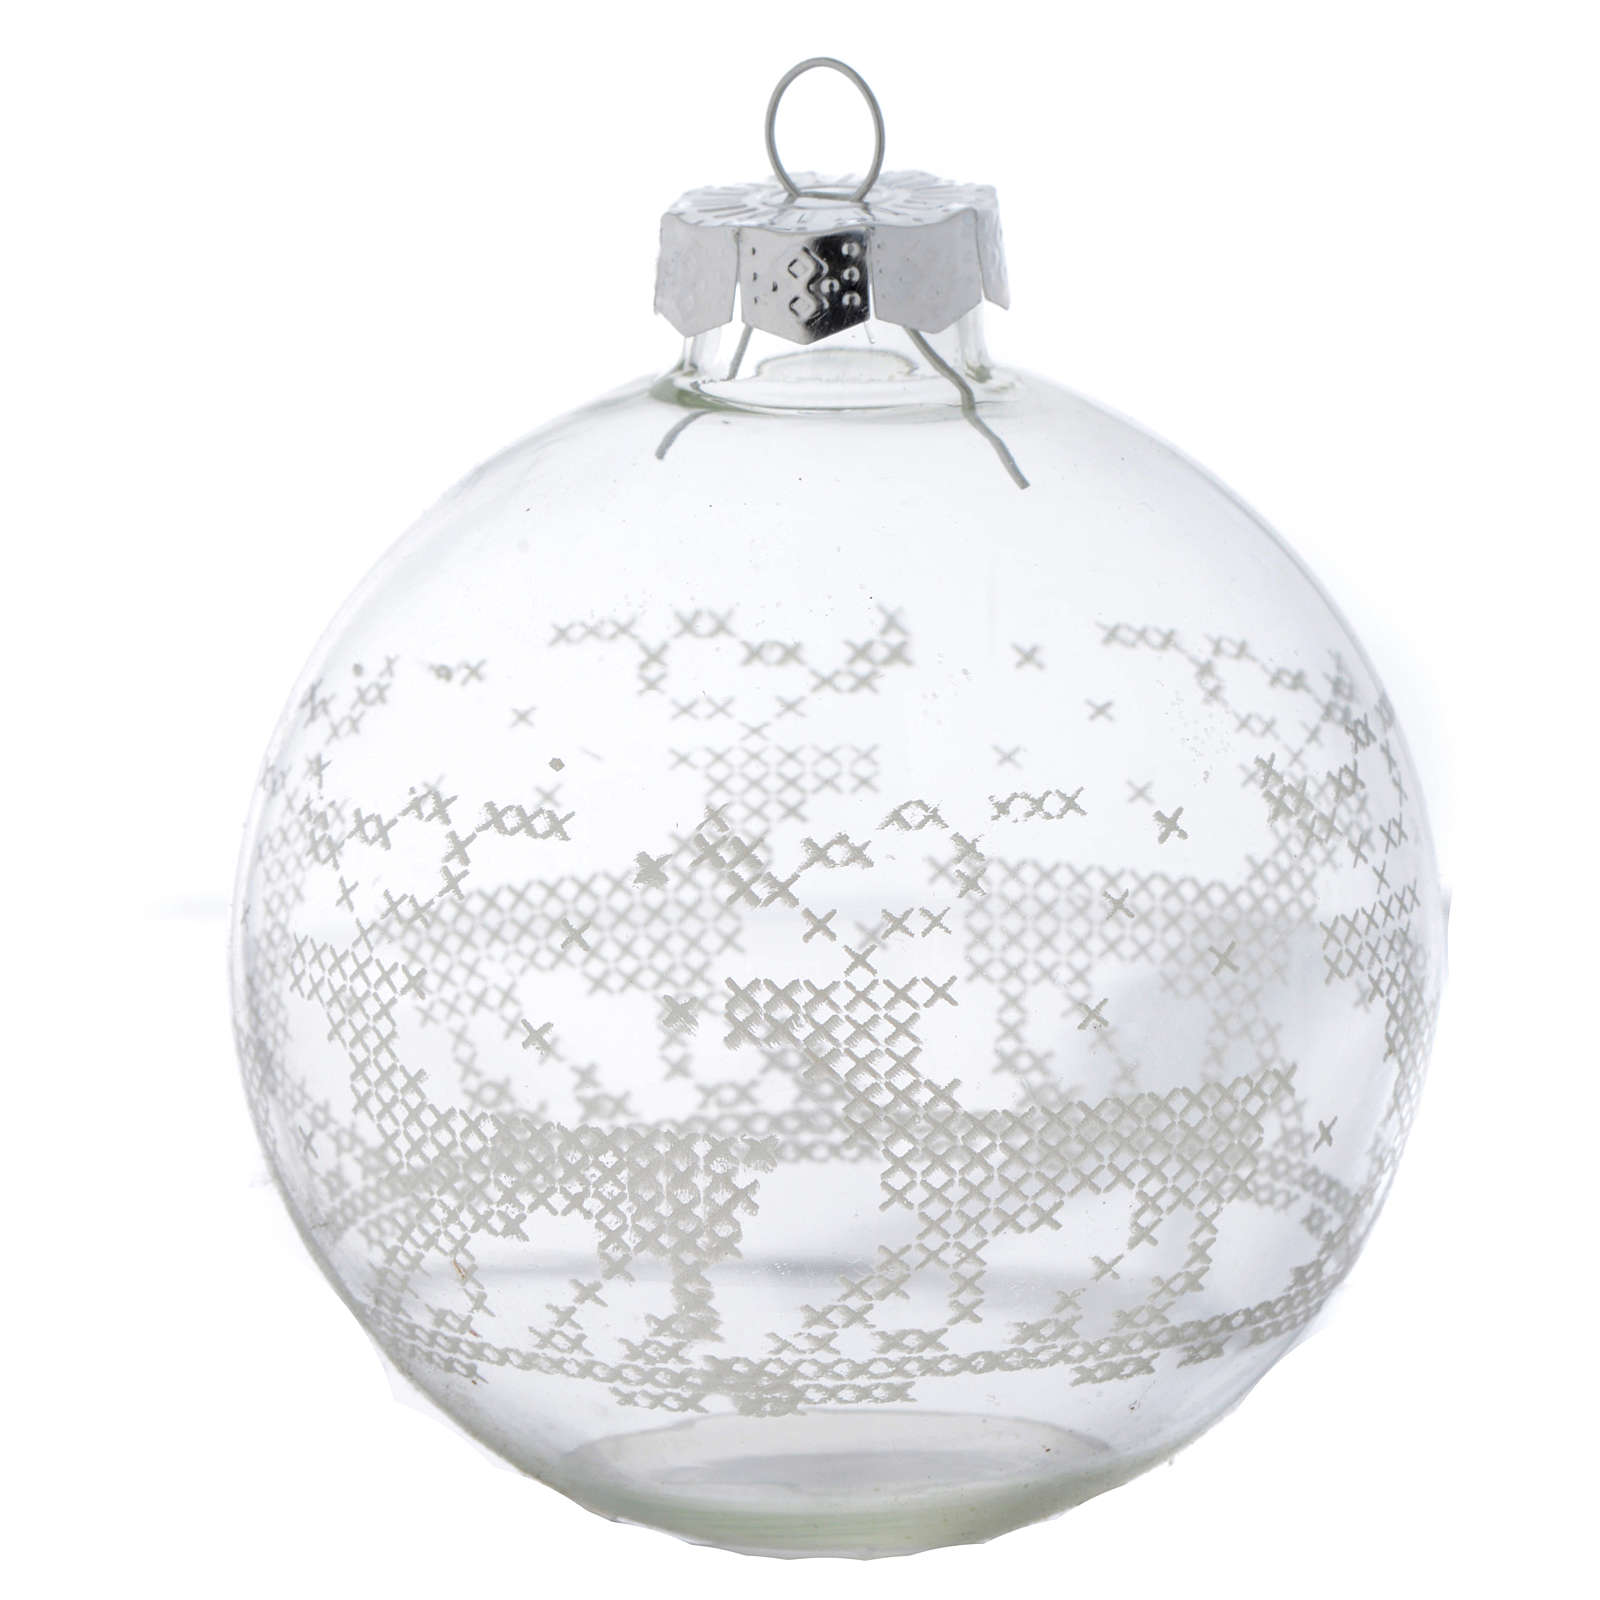 Glass Christmas bauble, with white decoration, 80mm diameter 4